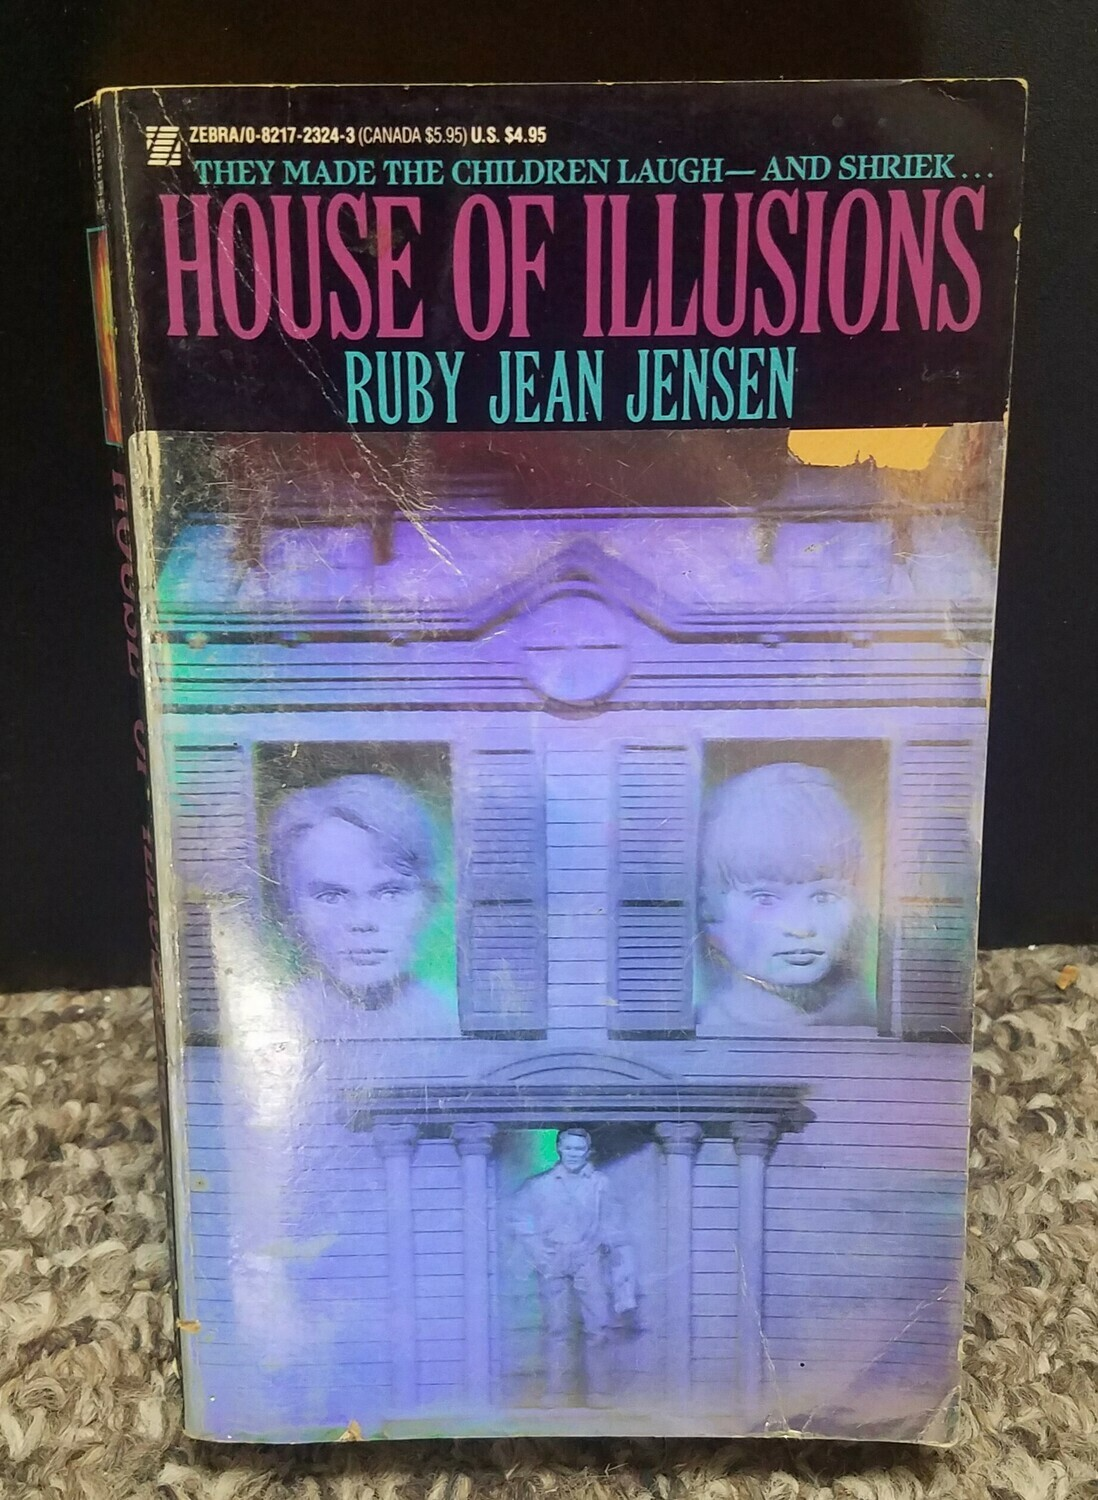 House of Illusion by Ruby Jean Jensen